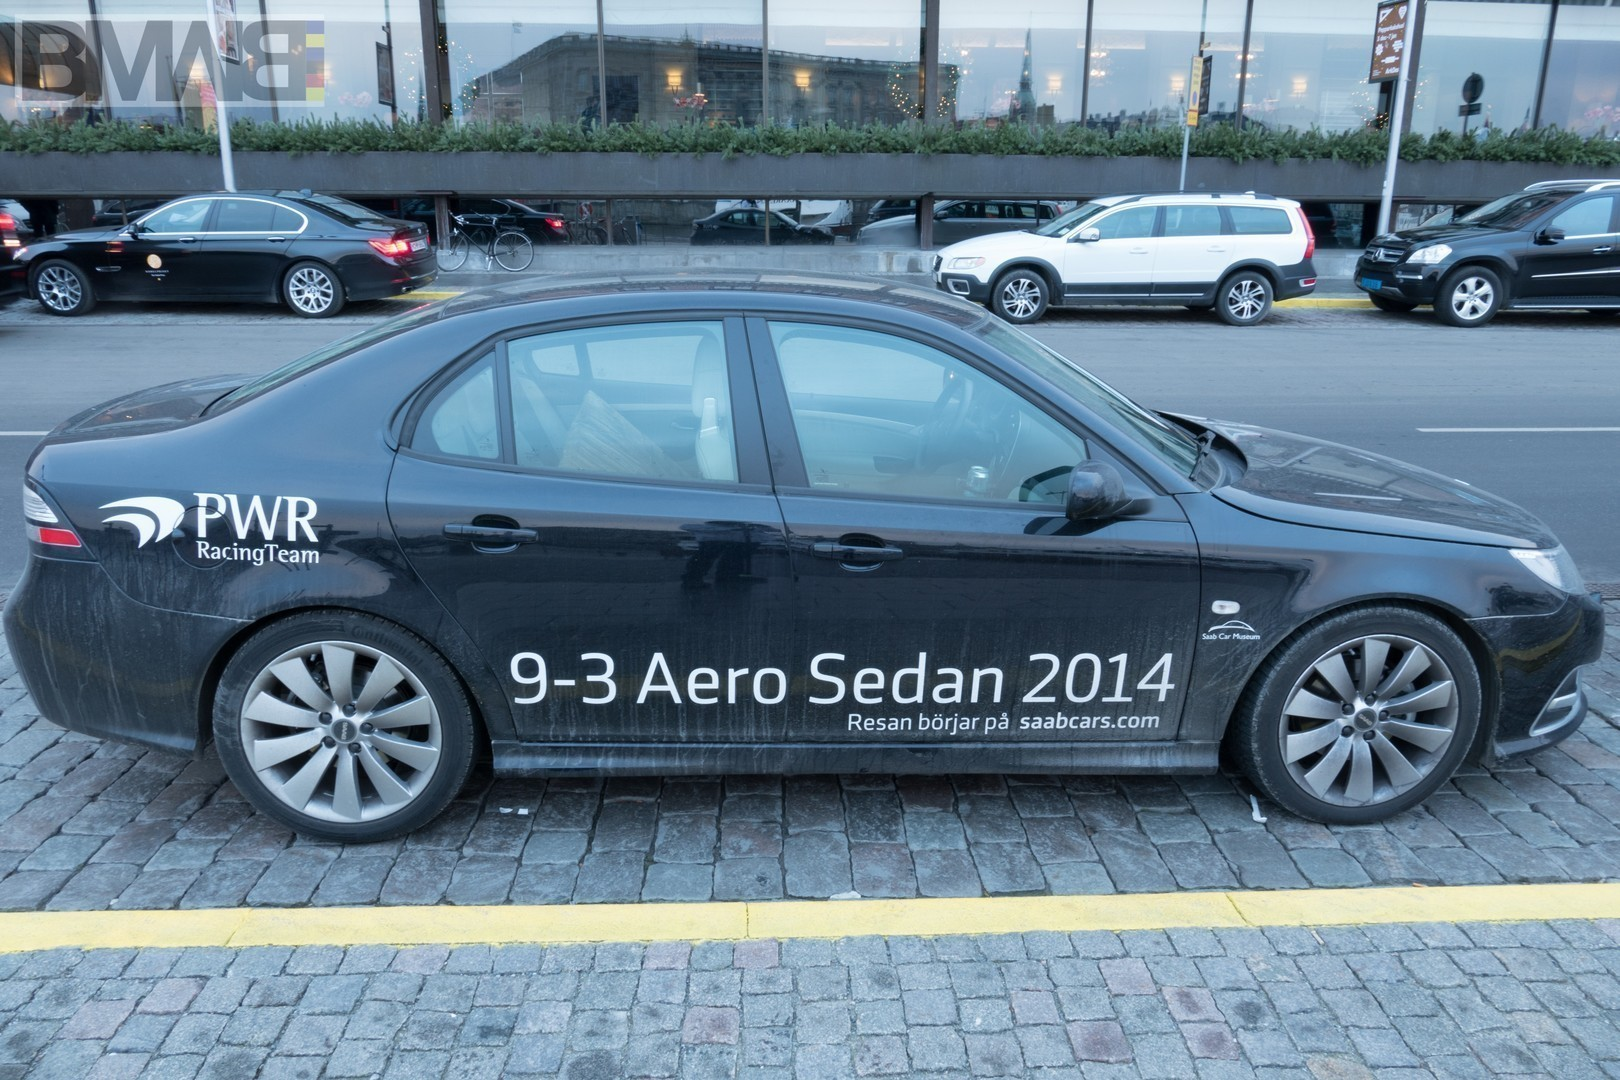 31 private owners of Saab 9-3N cars in Sweden 2014 – SAABSUNITED